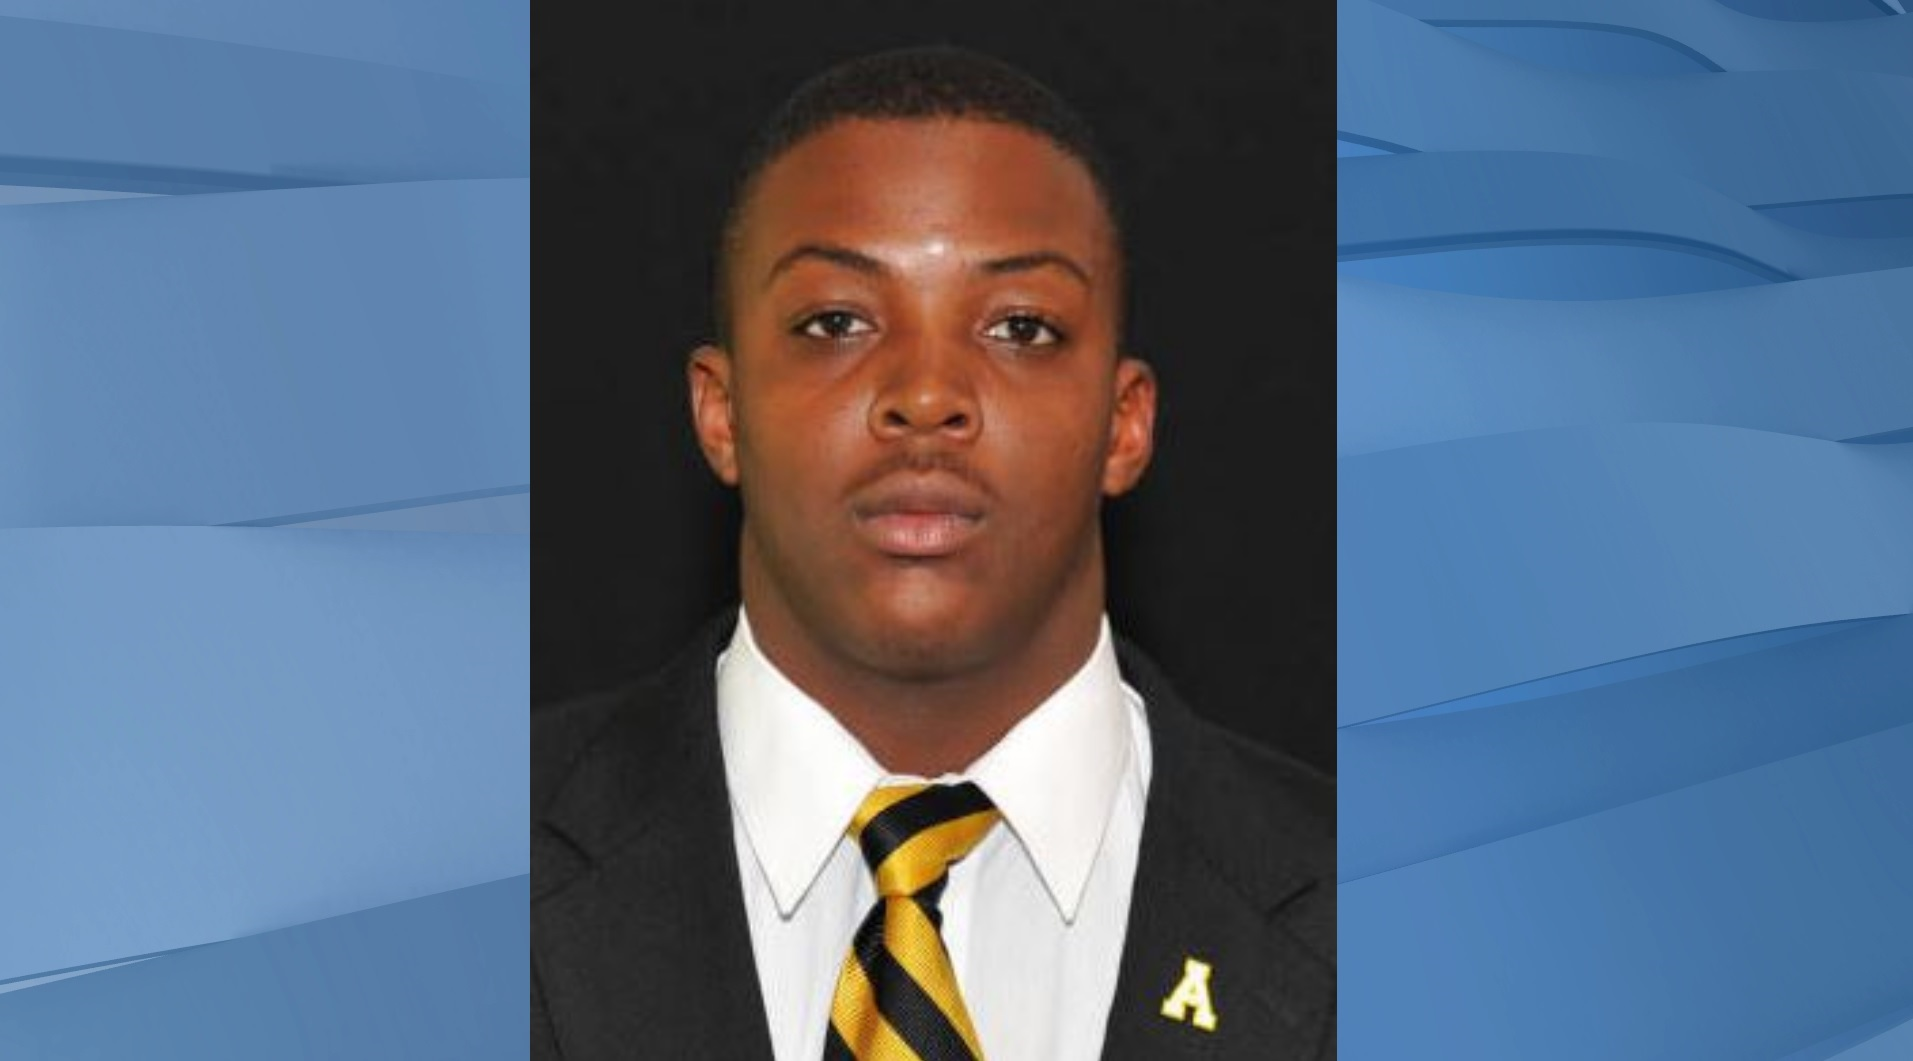 Police say Appalachian State football player stabbed